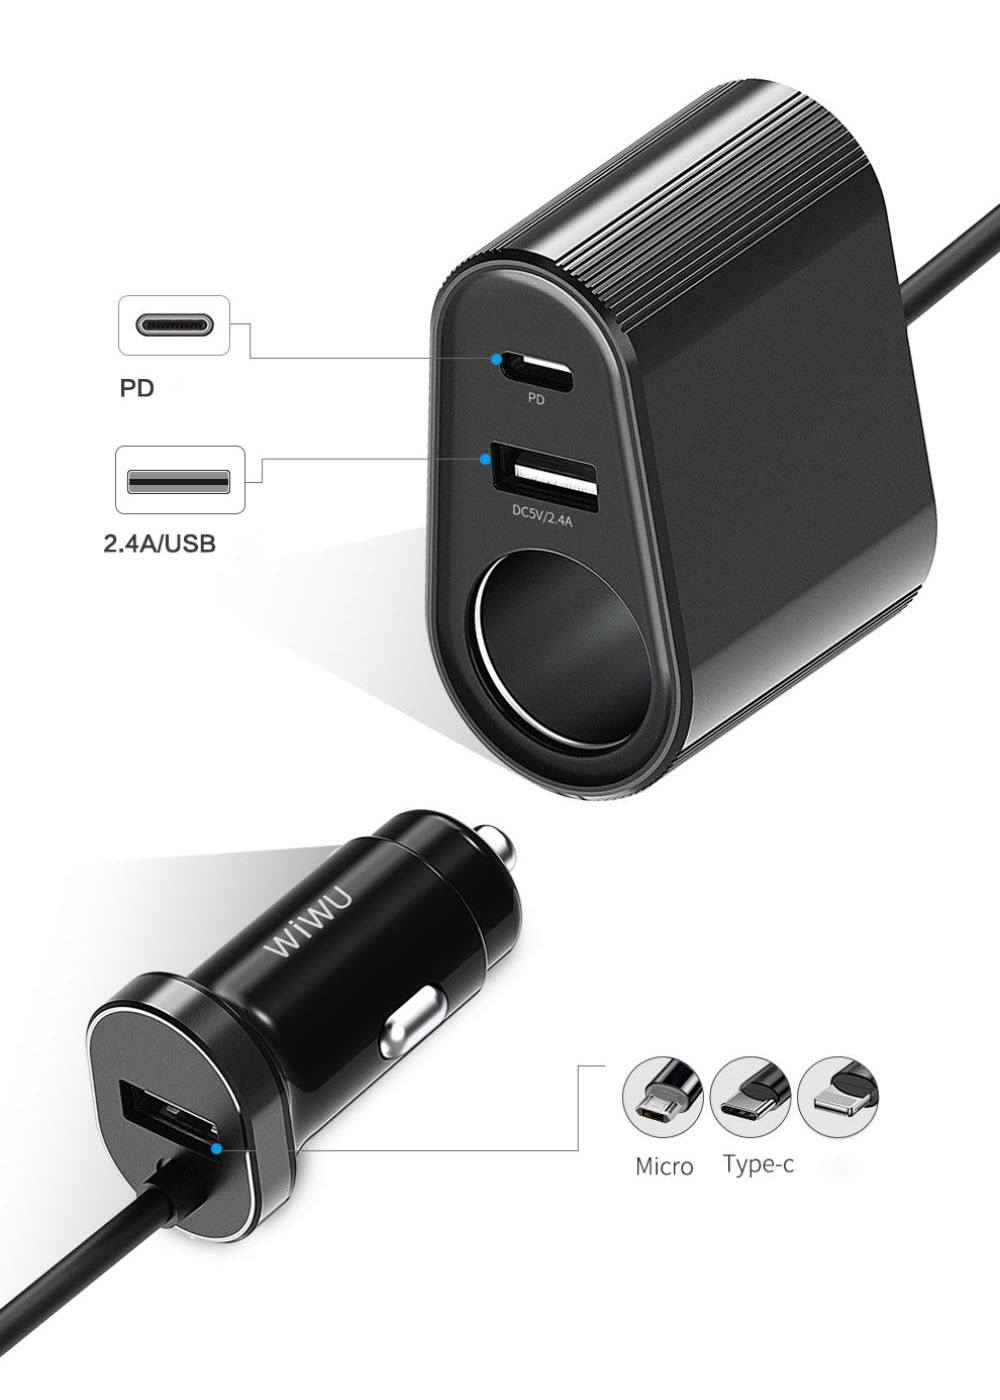 Wiwu Qc300 Multi Functional Car Charger With Extension Cable (1)